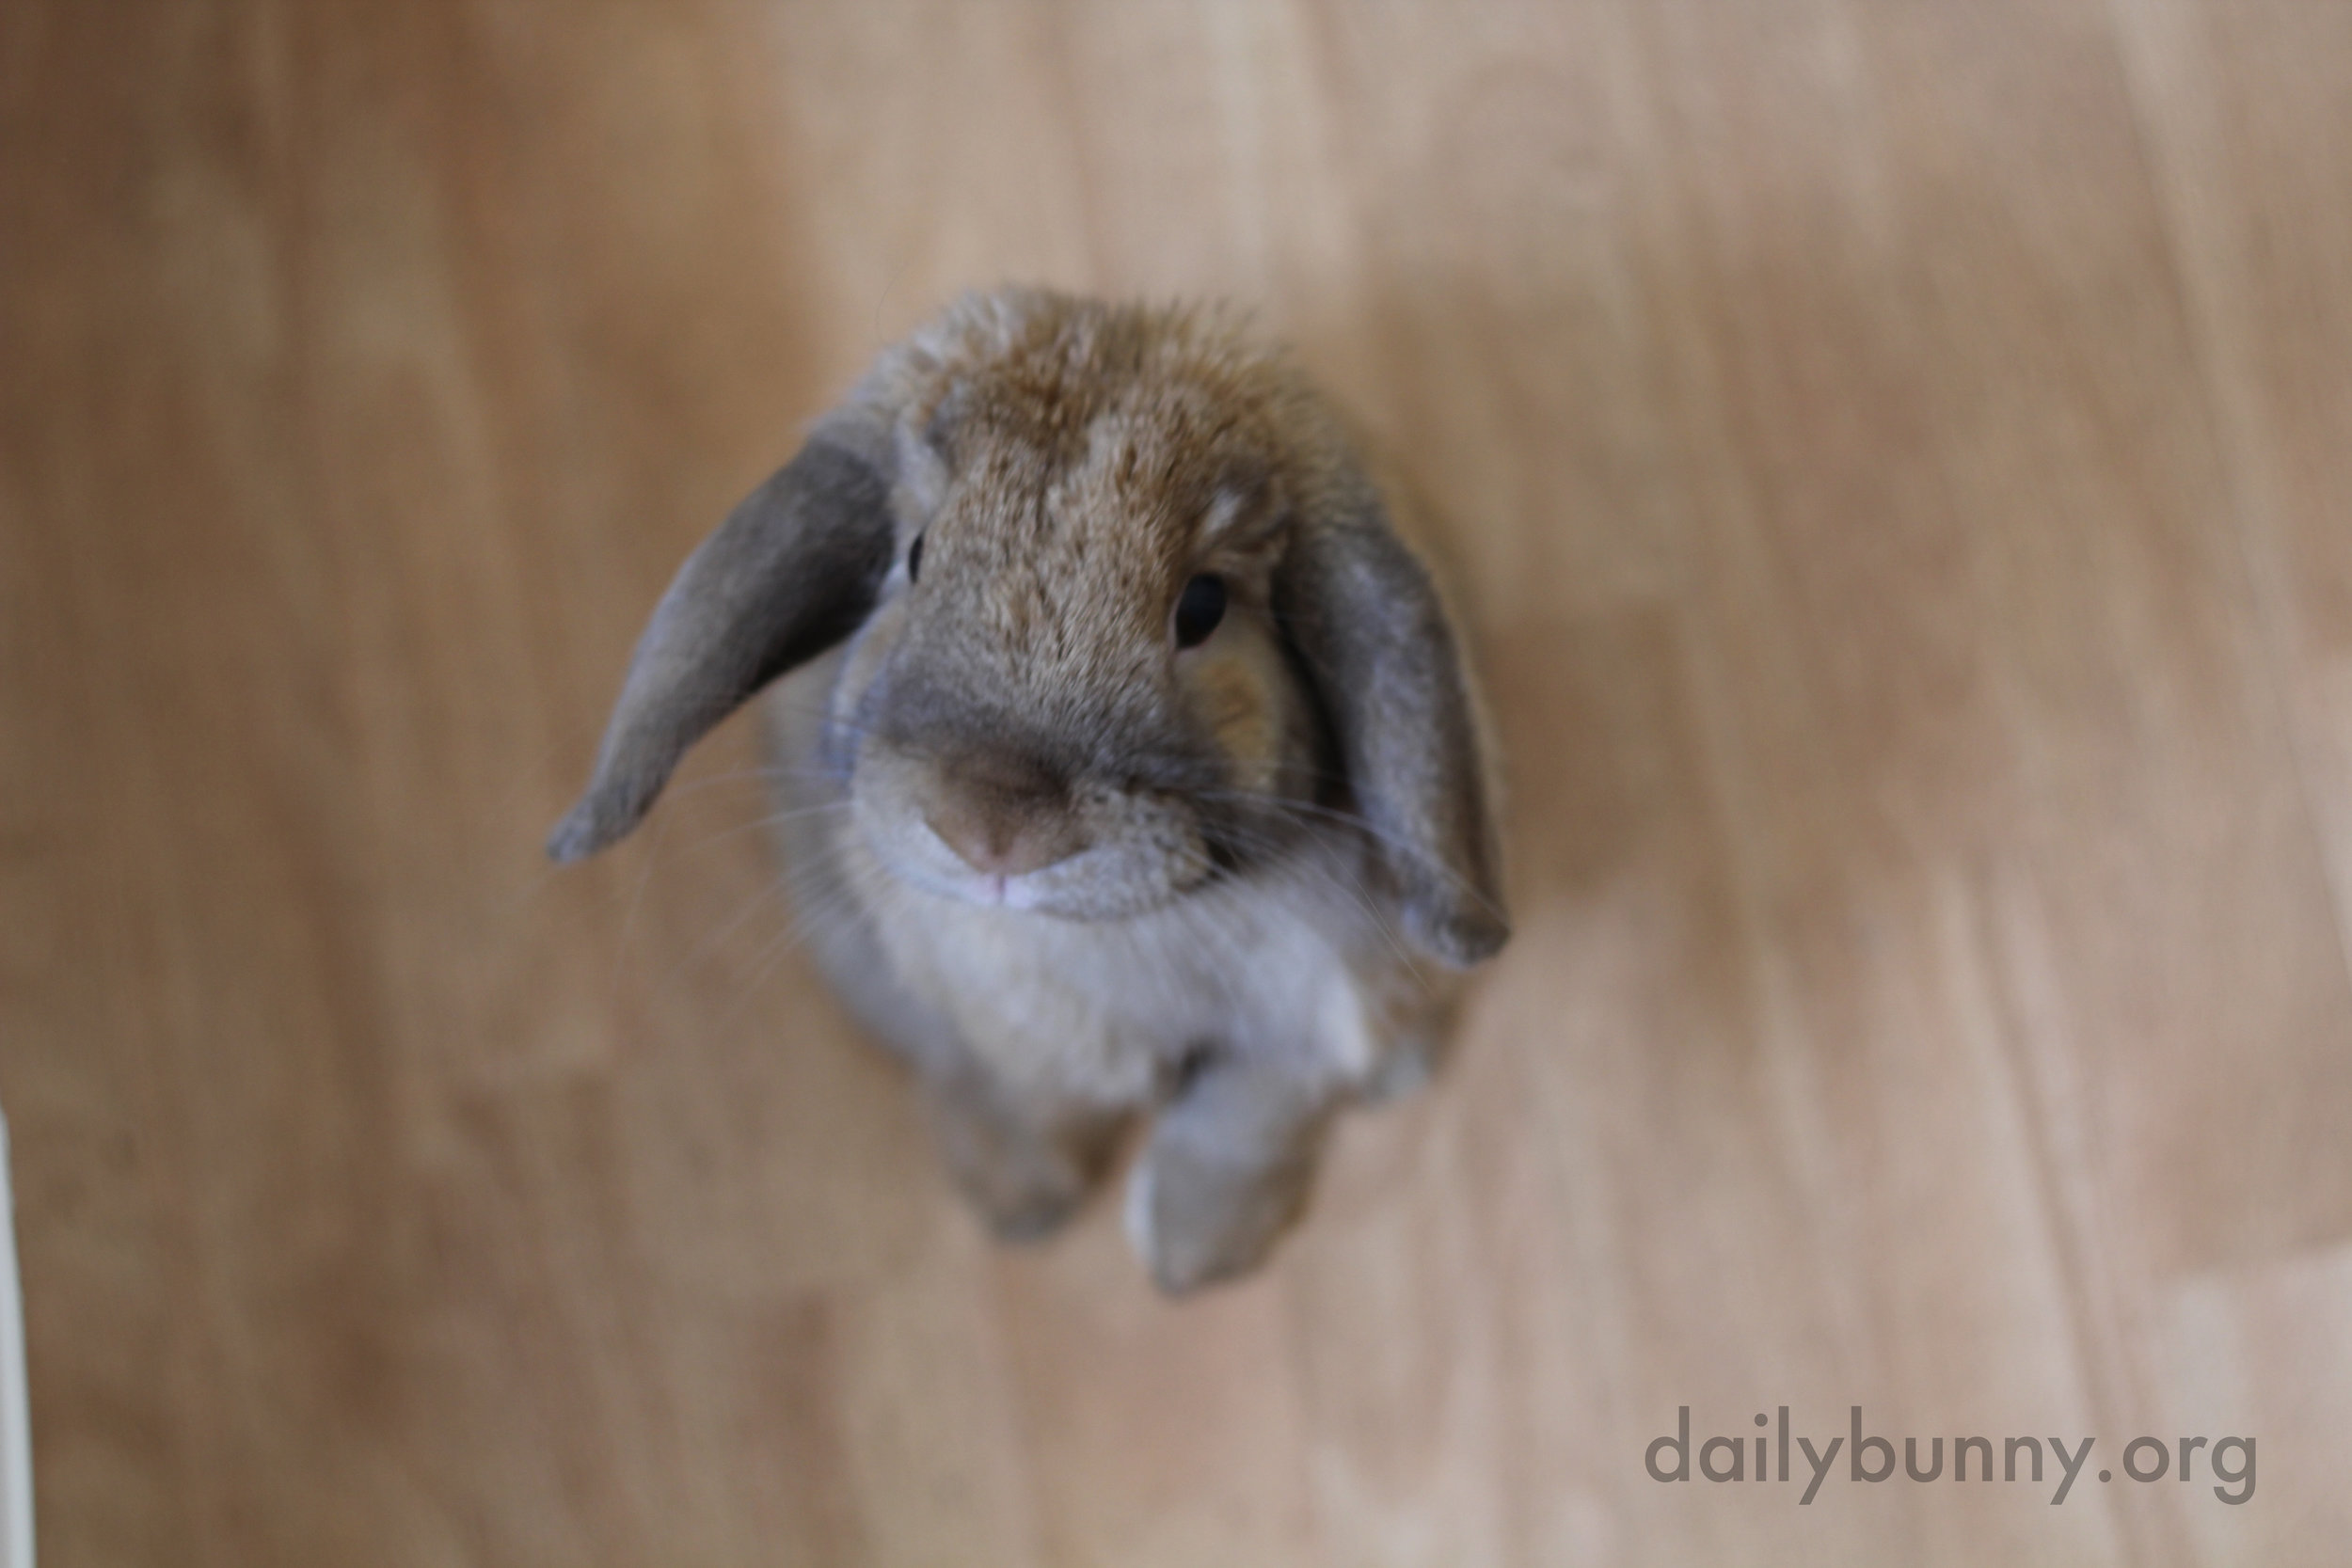 Bunny Will Travel Through Tunnels and Stand Up Tall to Be Near His Human 2